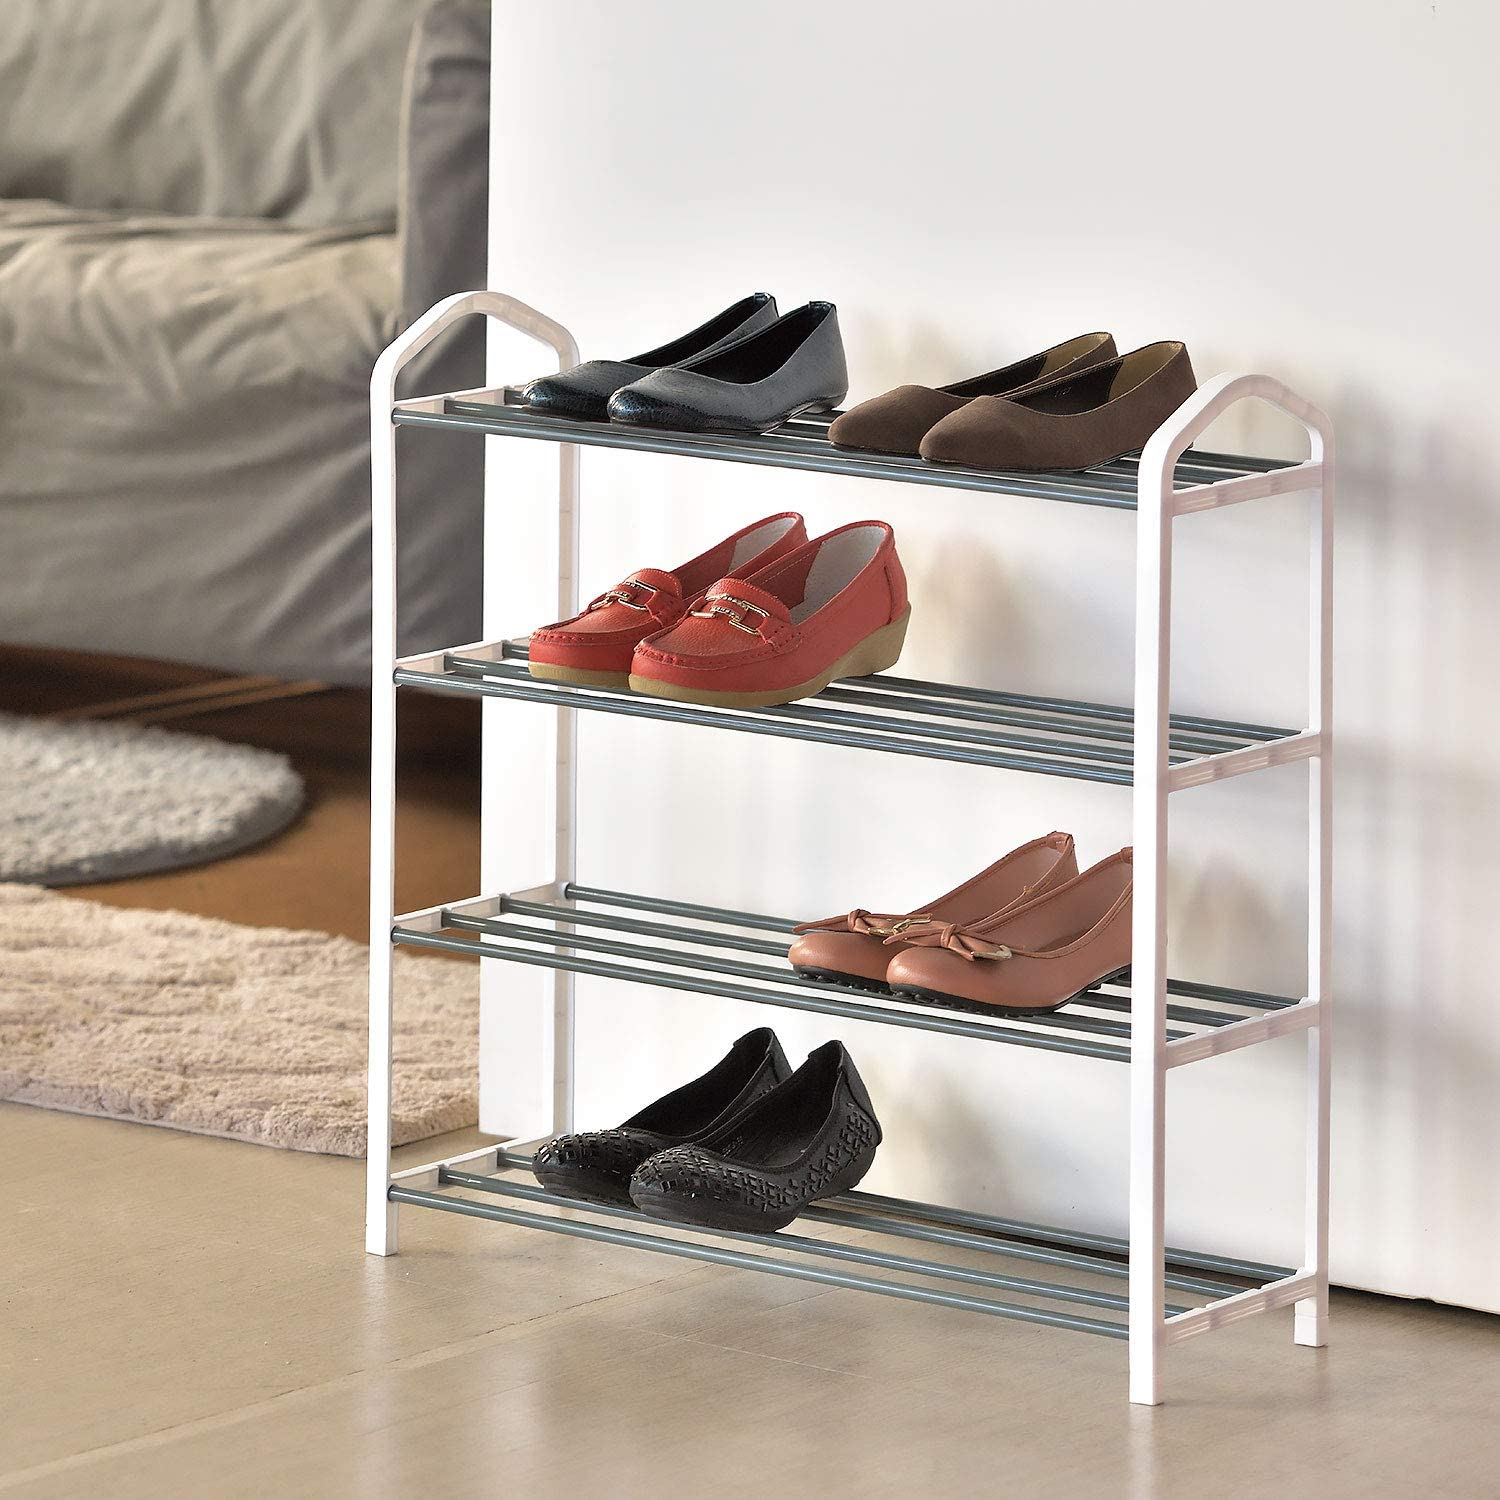 Shoe Organizer San Diego Mall Free Standing Rack Sh Tier Stand Tampa Mall 4